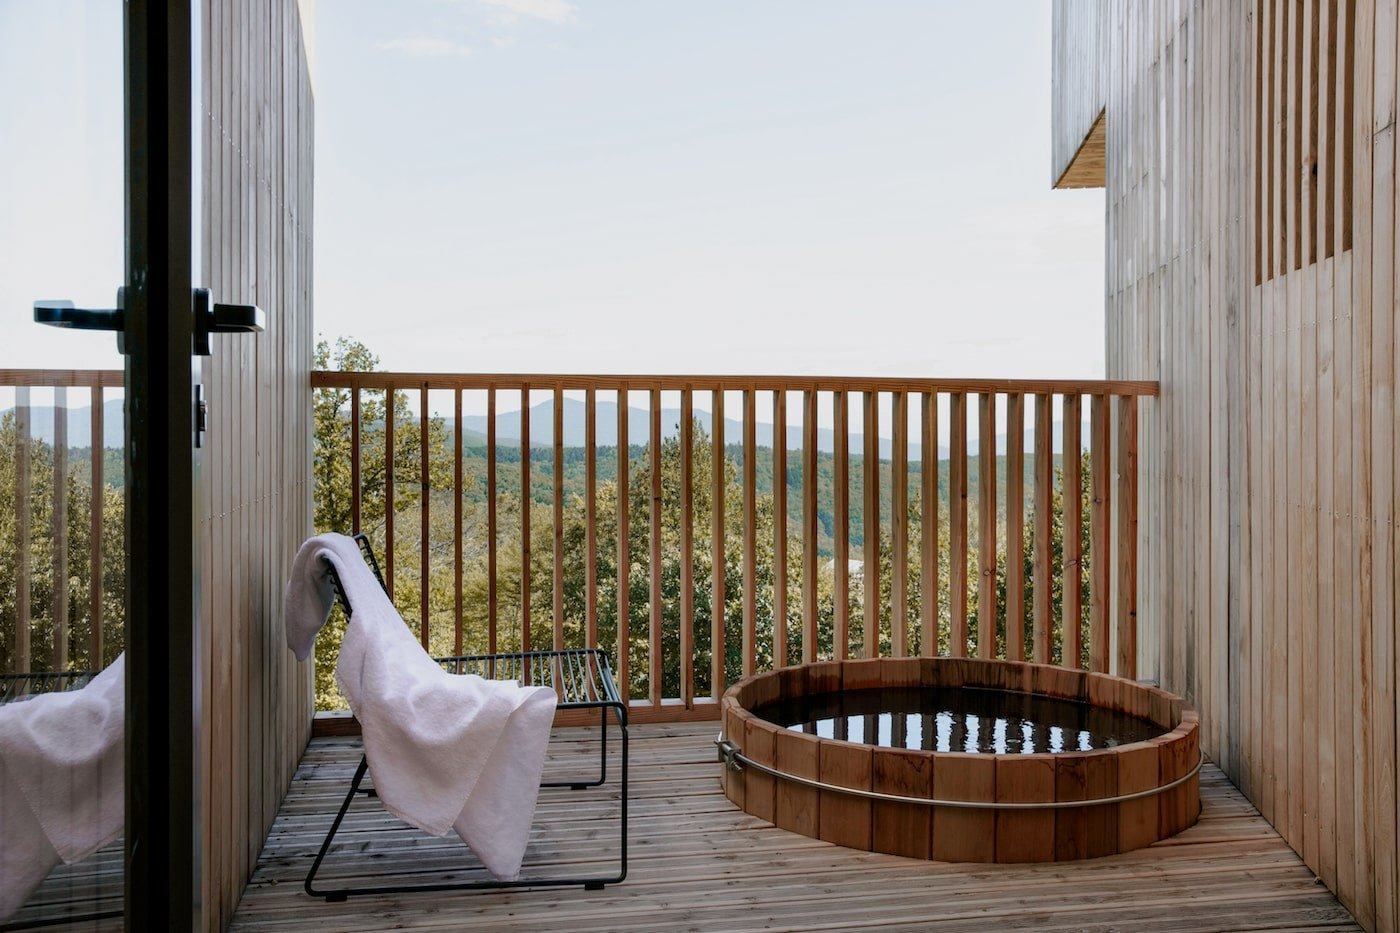 Timber hot tub on hotel room deck